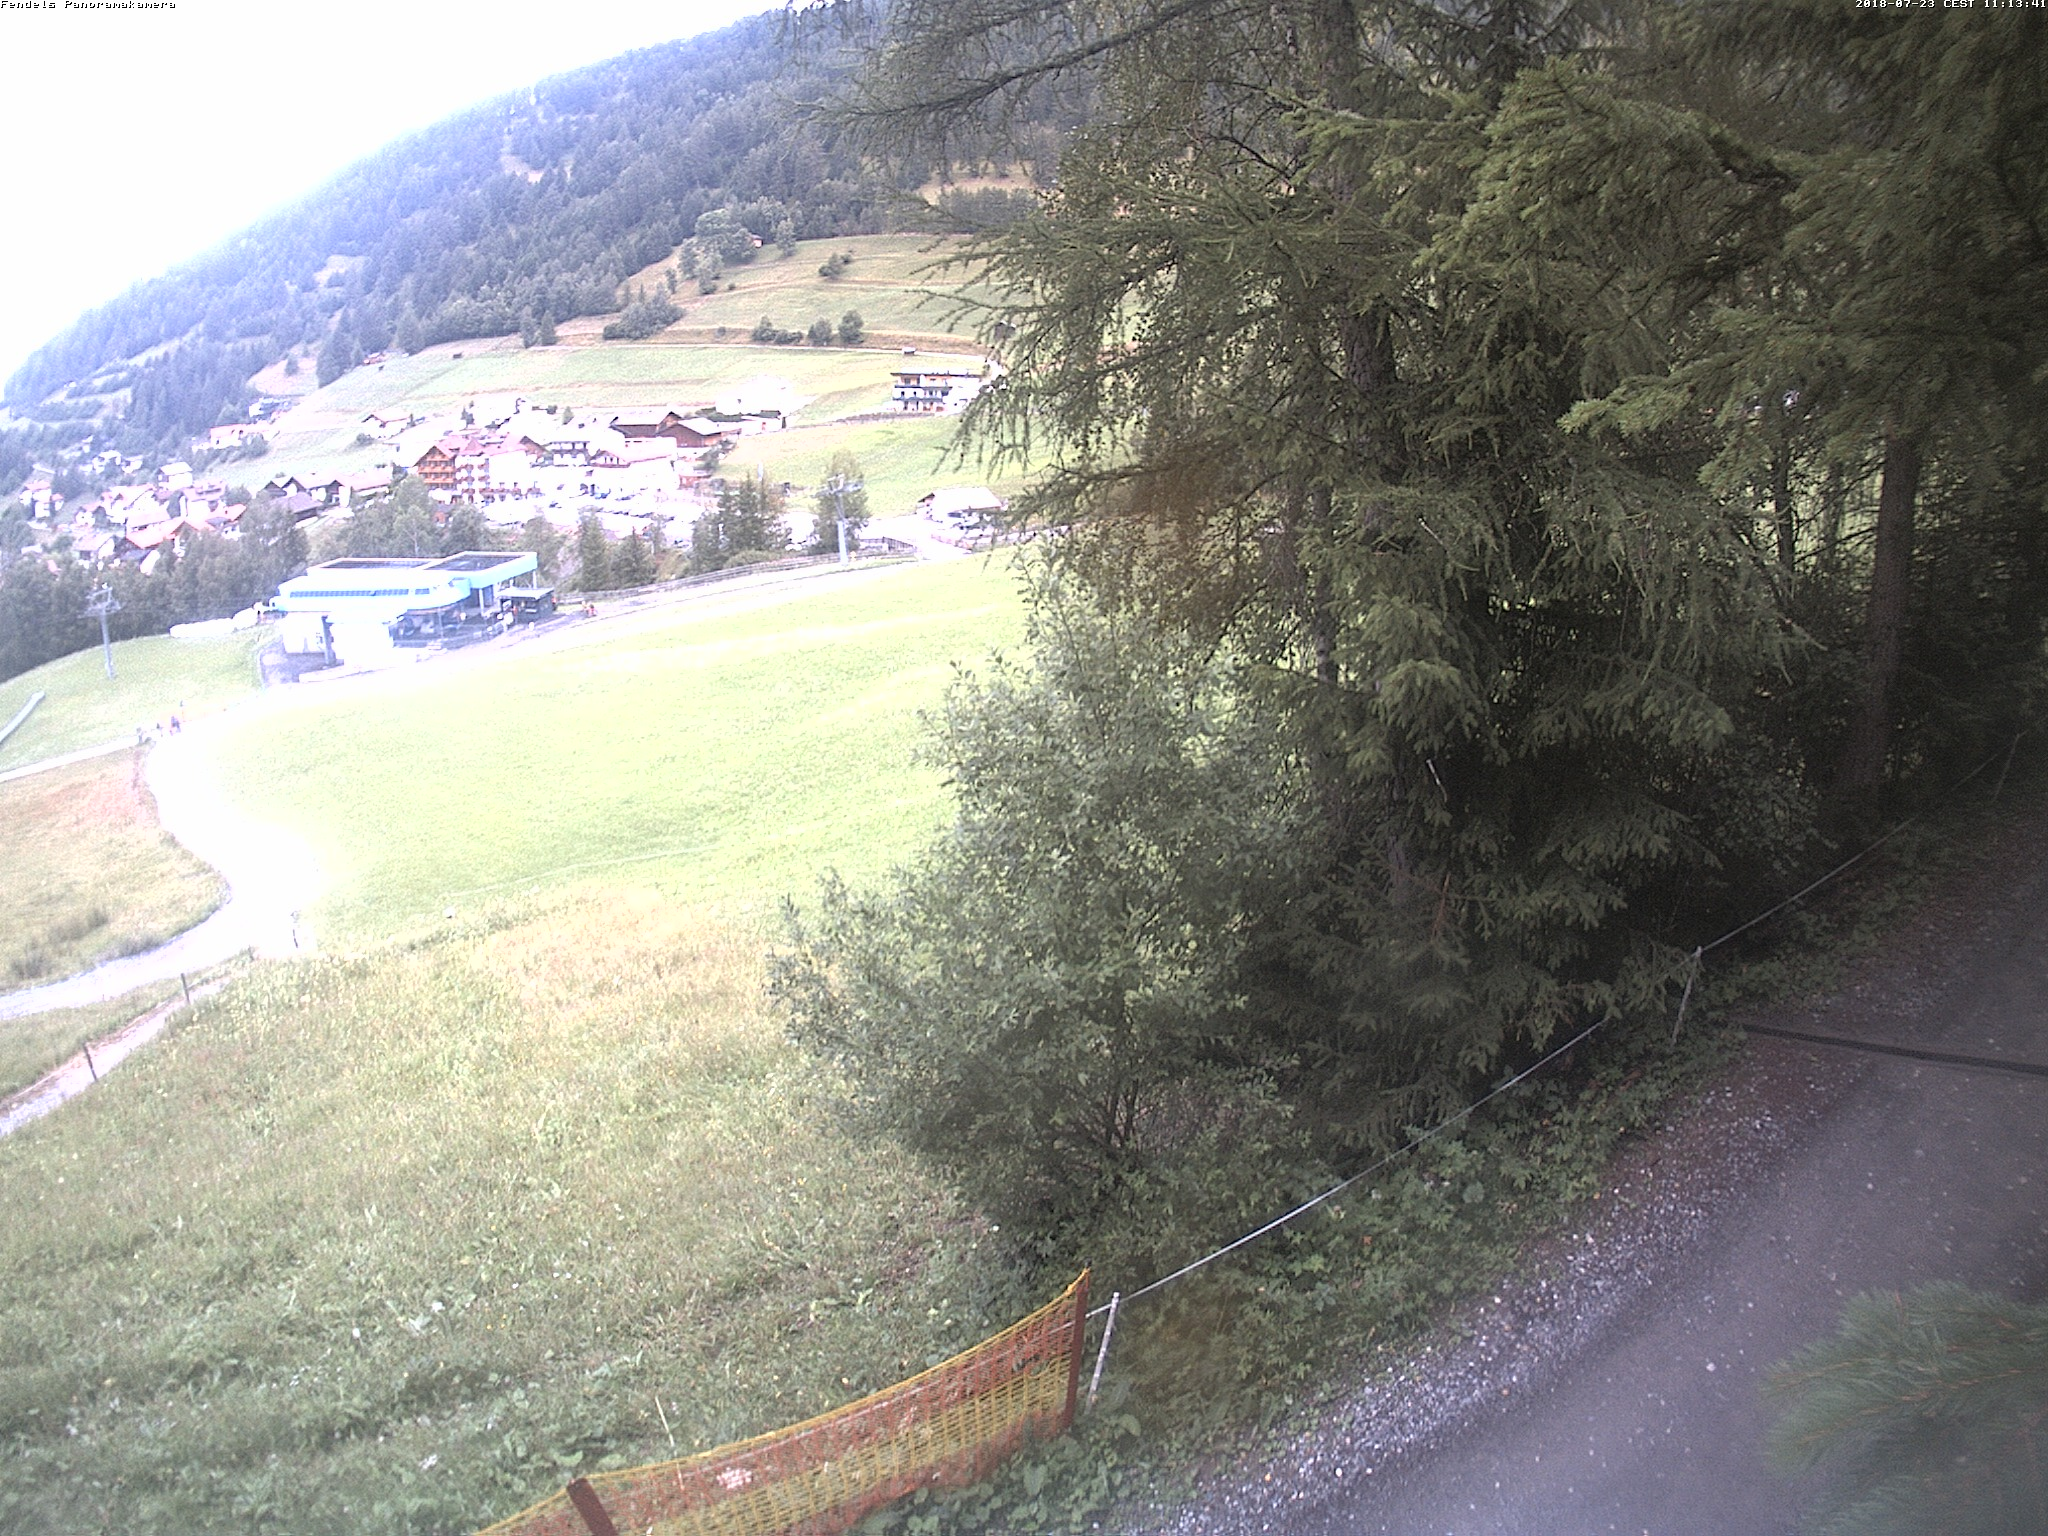 Webcam <br><span>Webcam Kaunertal - Fendels</span>